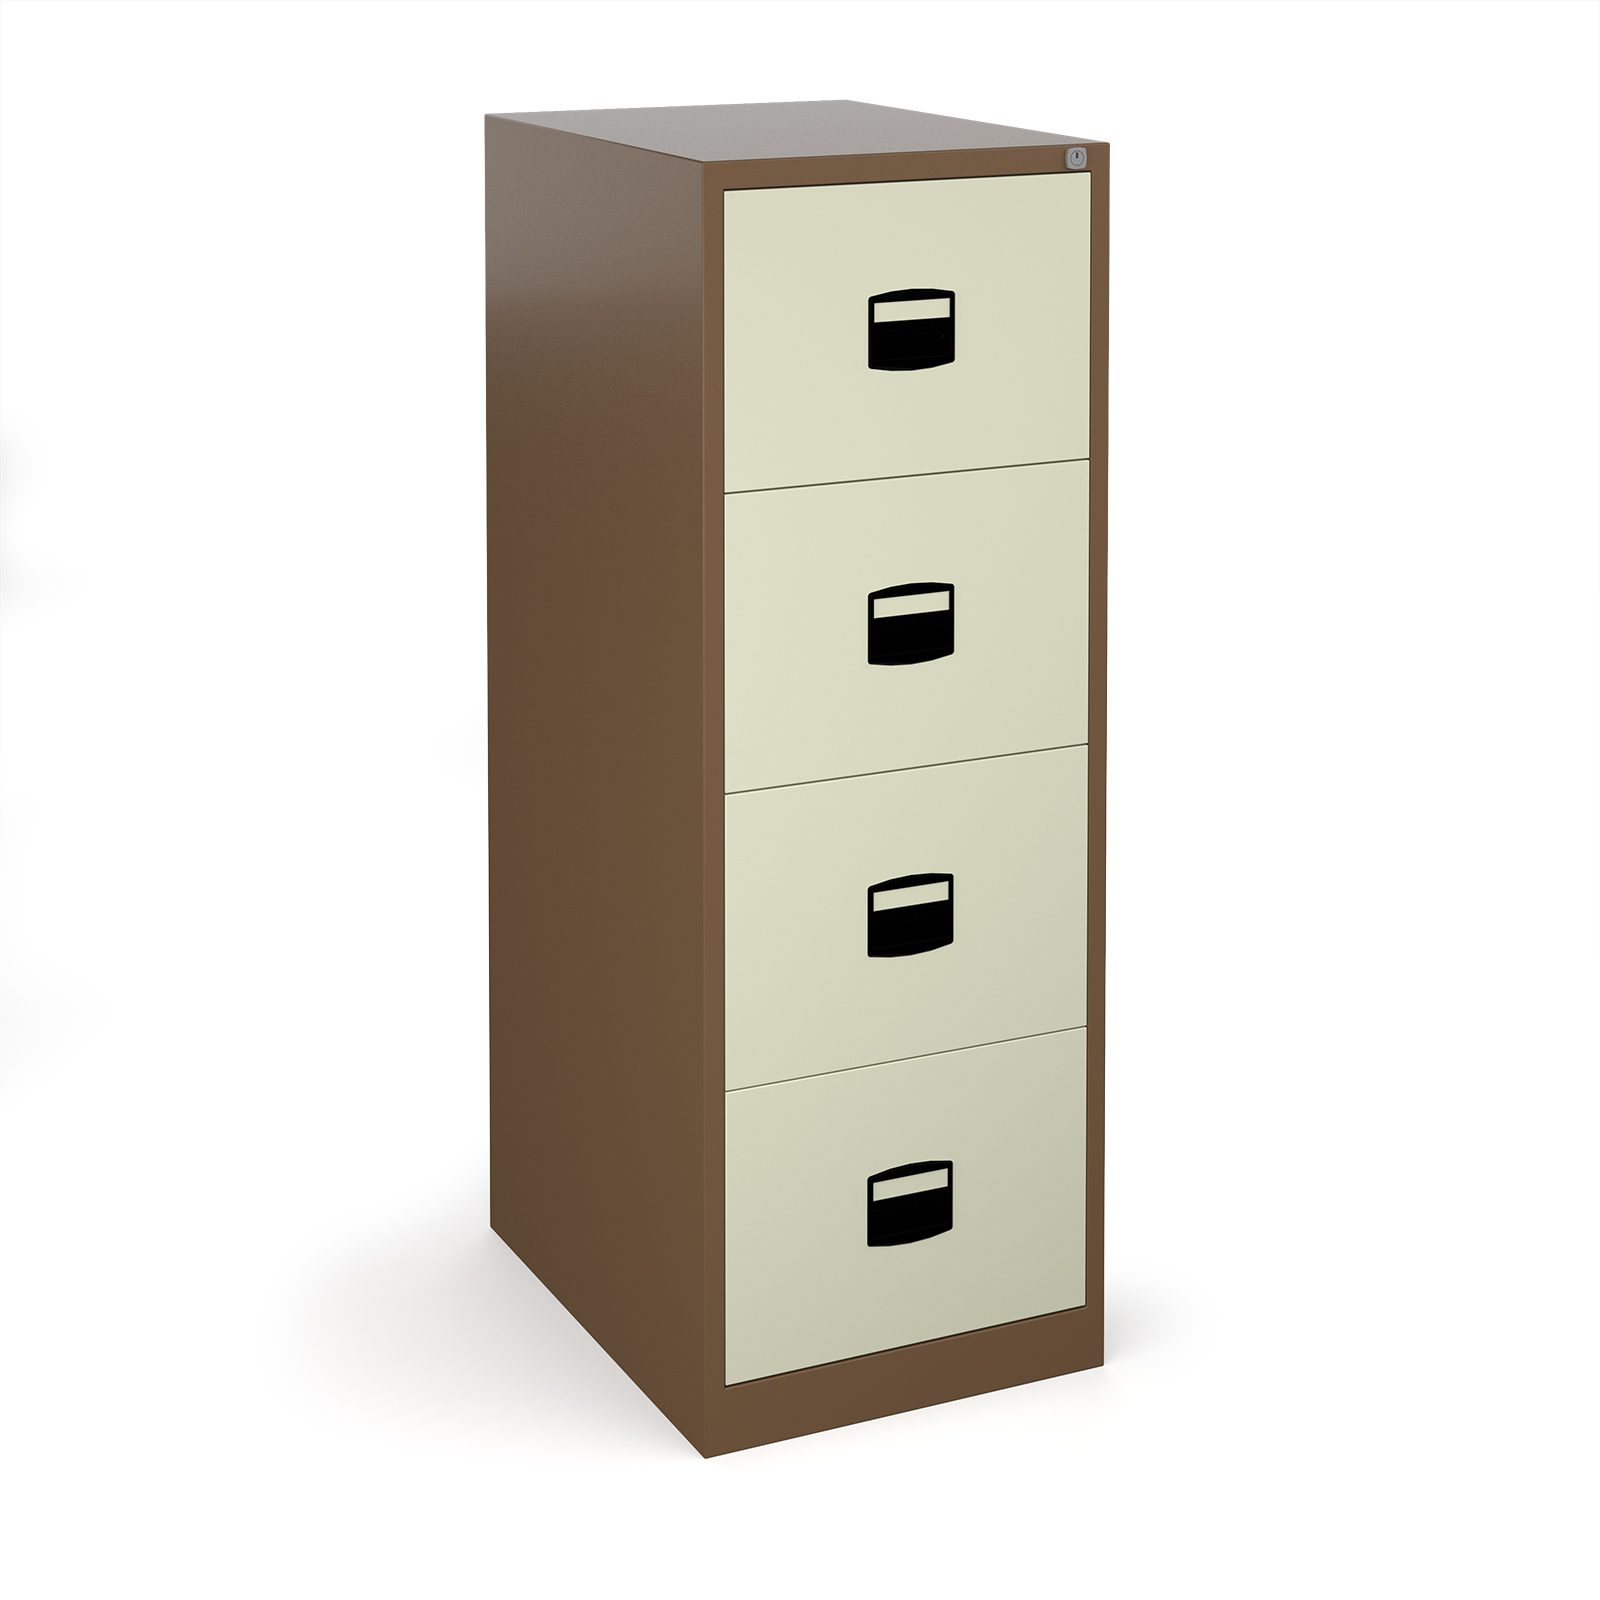 Steel Steel 4 drawer contract filing cabinet 1321mm high - coffee/cream